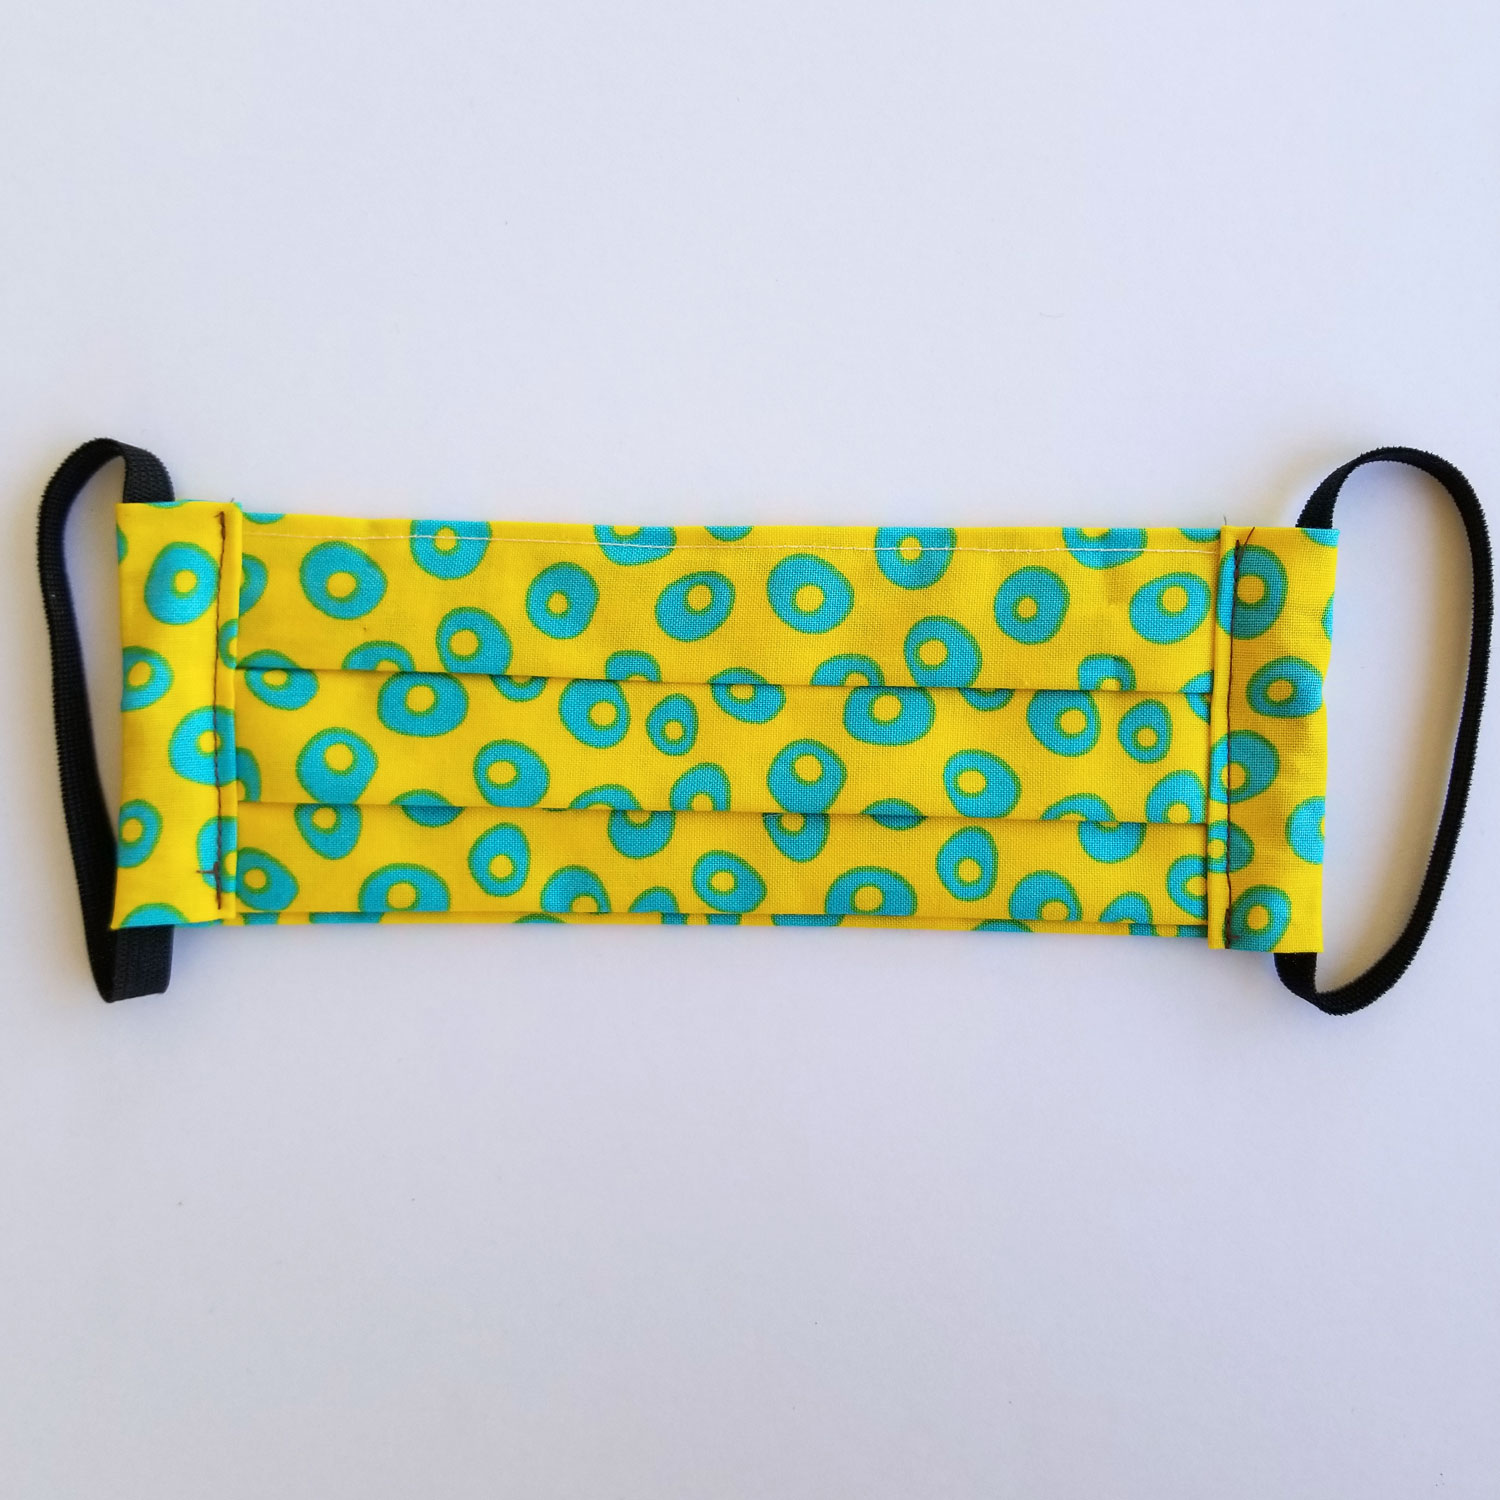 Handmade fabric mask in bright yellow with blue spots